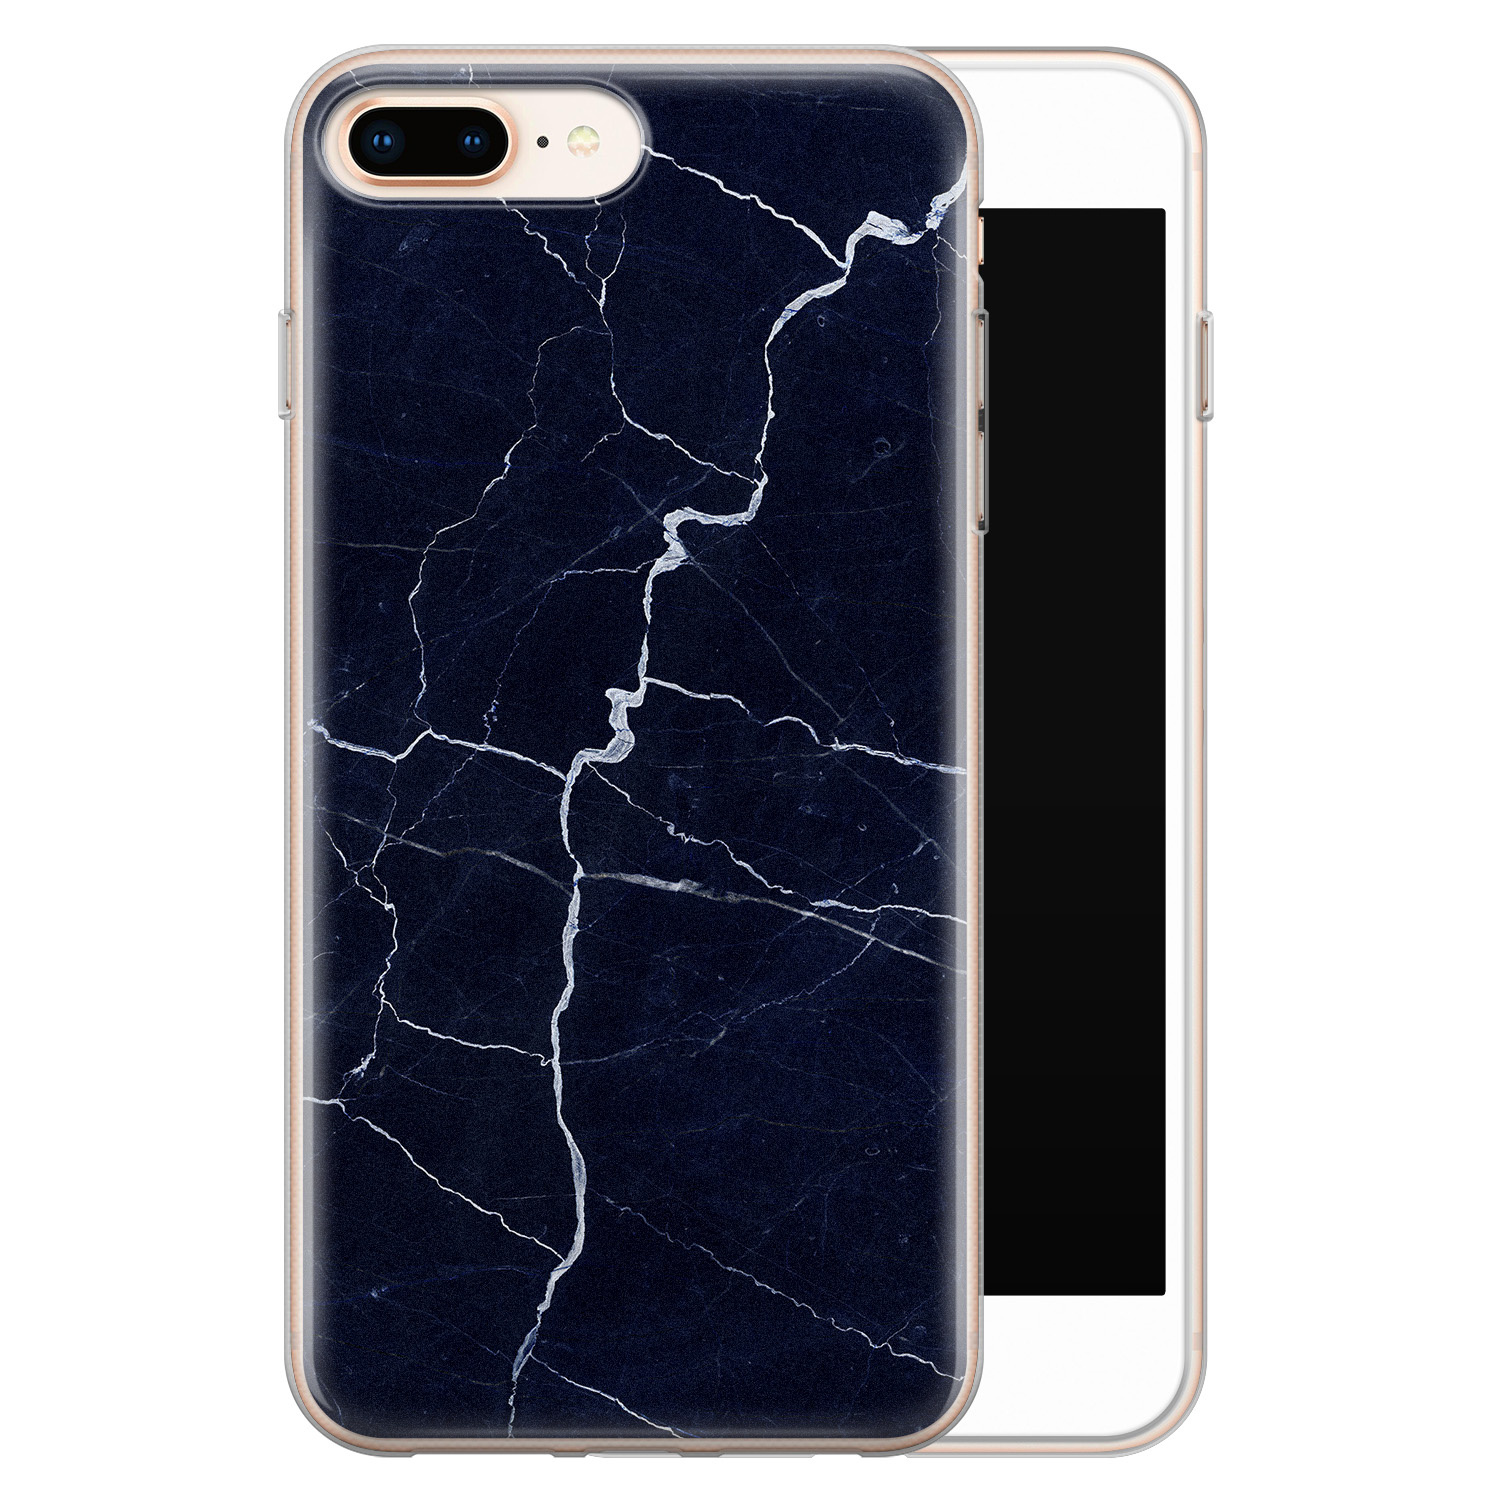 iPhone 8 Plus/7 Plus siliconen hoesje - Marmer navy blauw